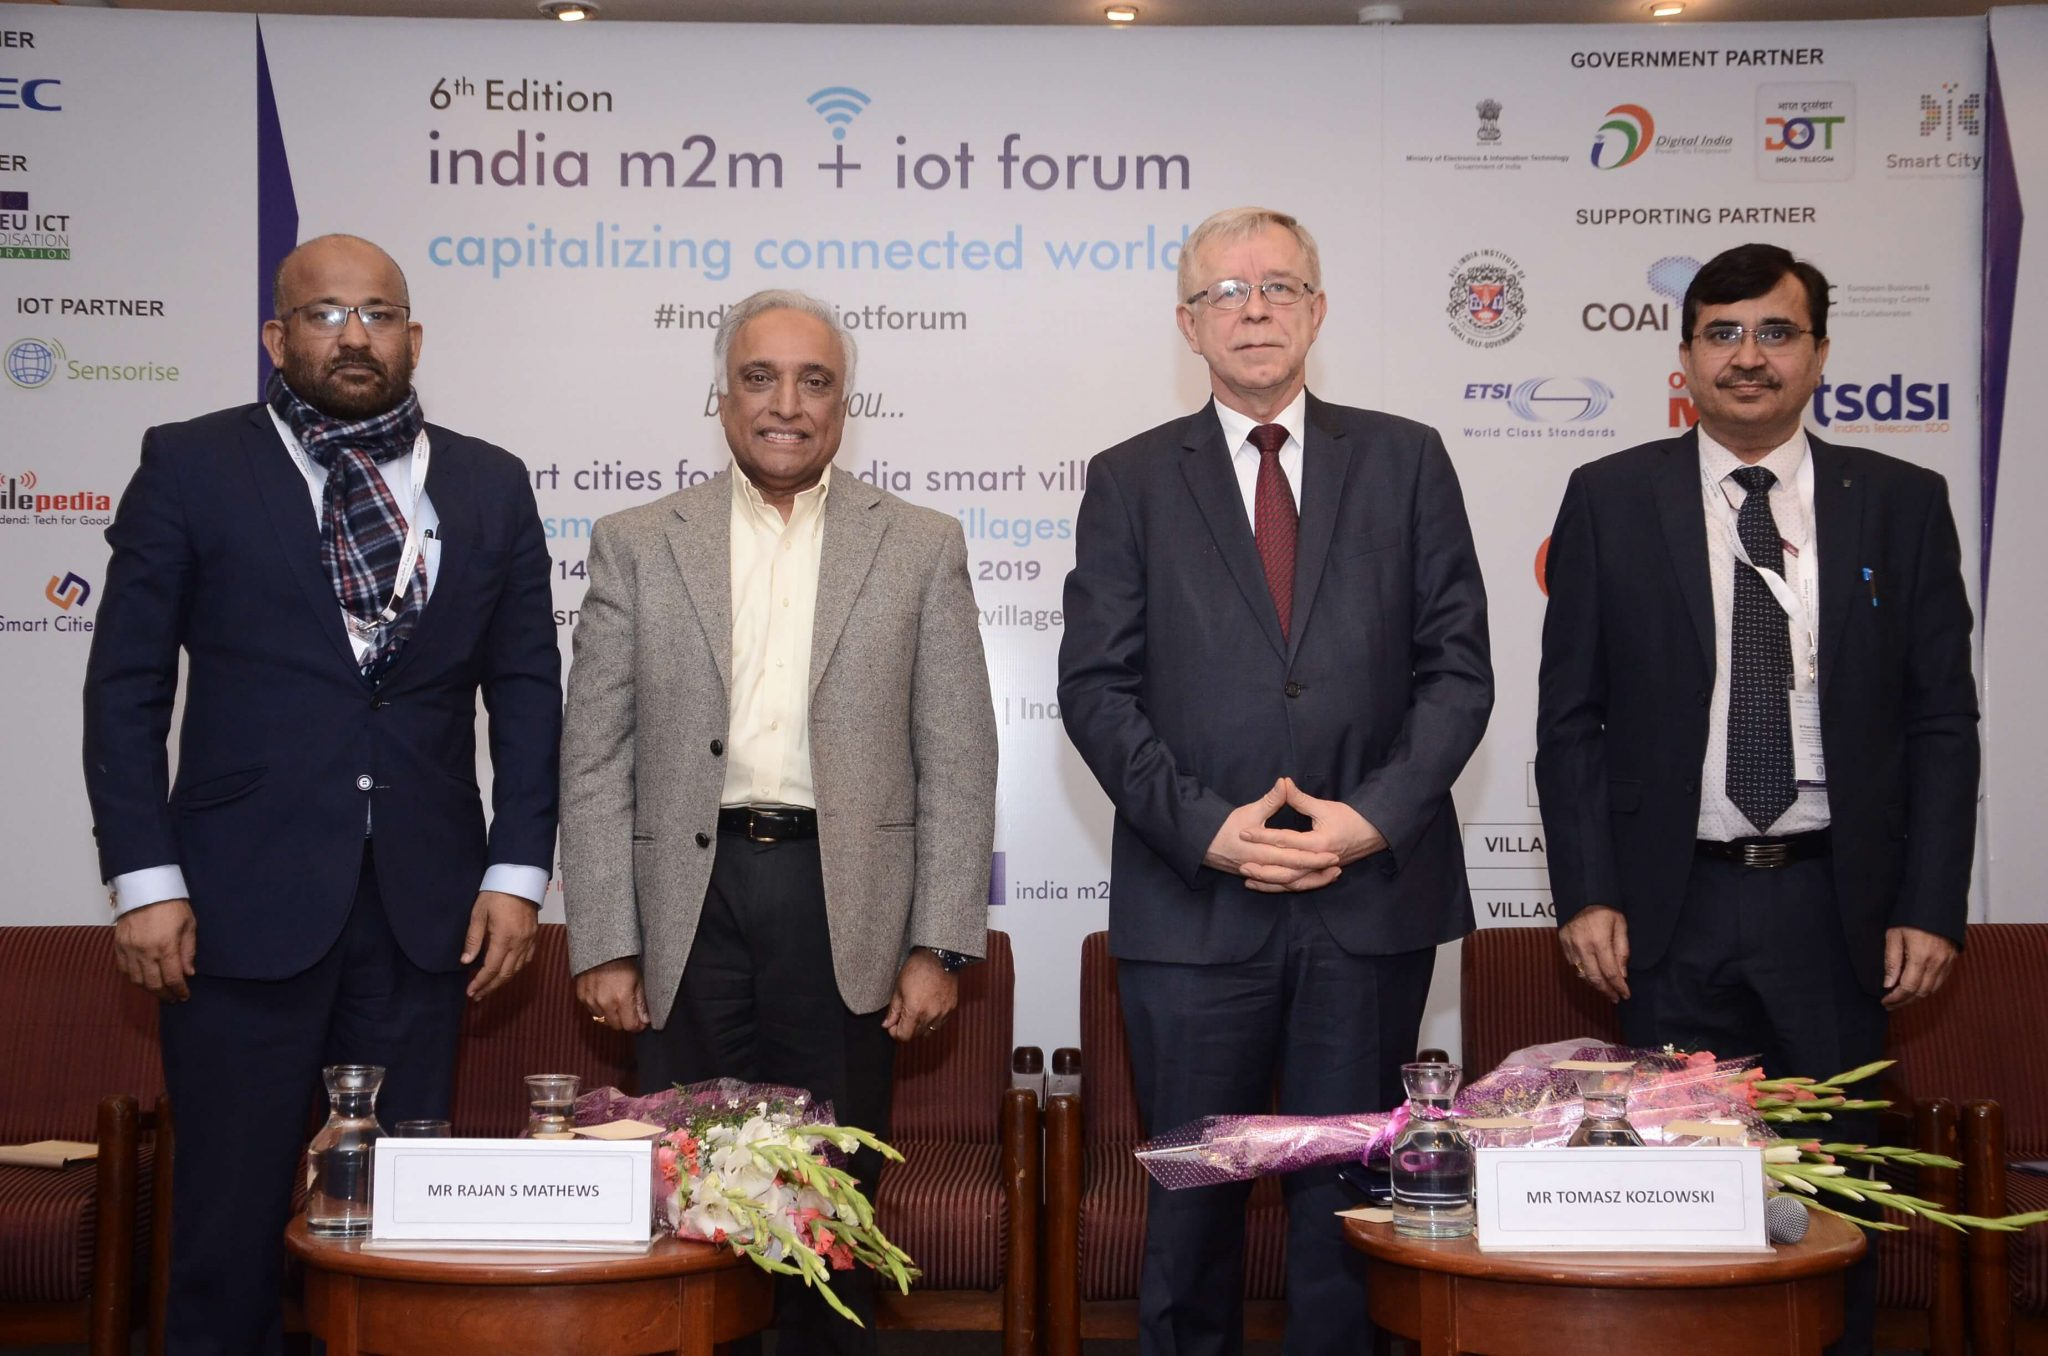 6th Edition of India m2m + iot Forum 2019 1